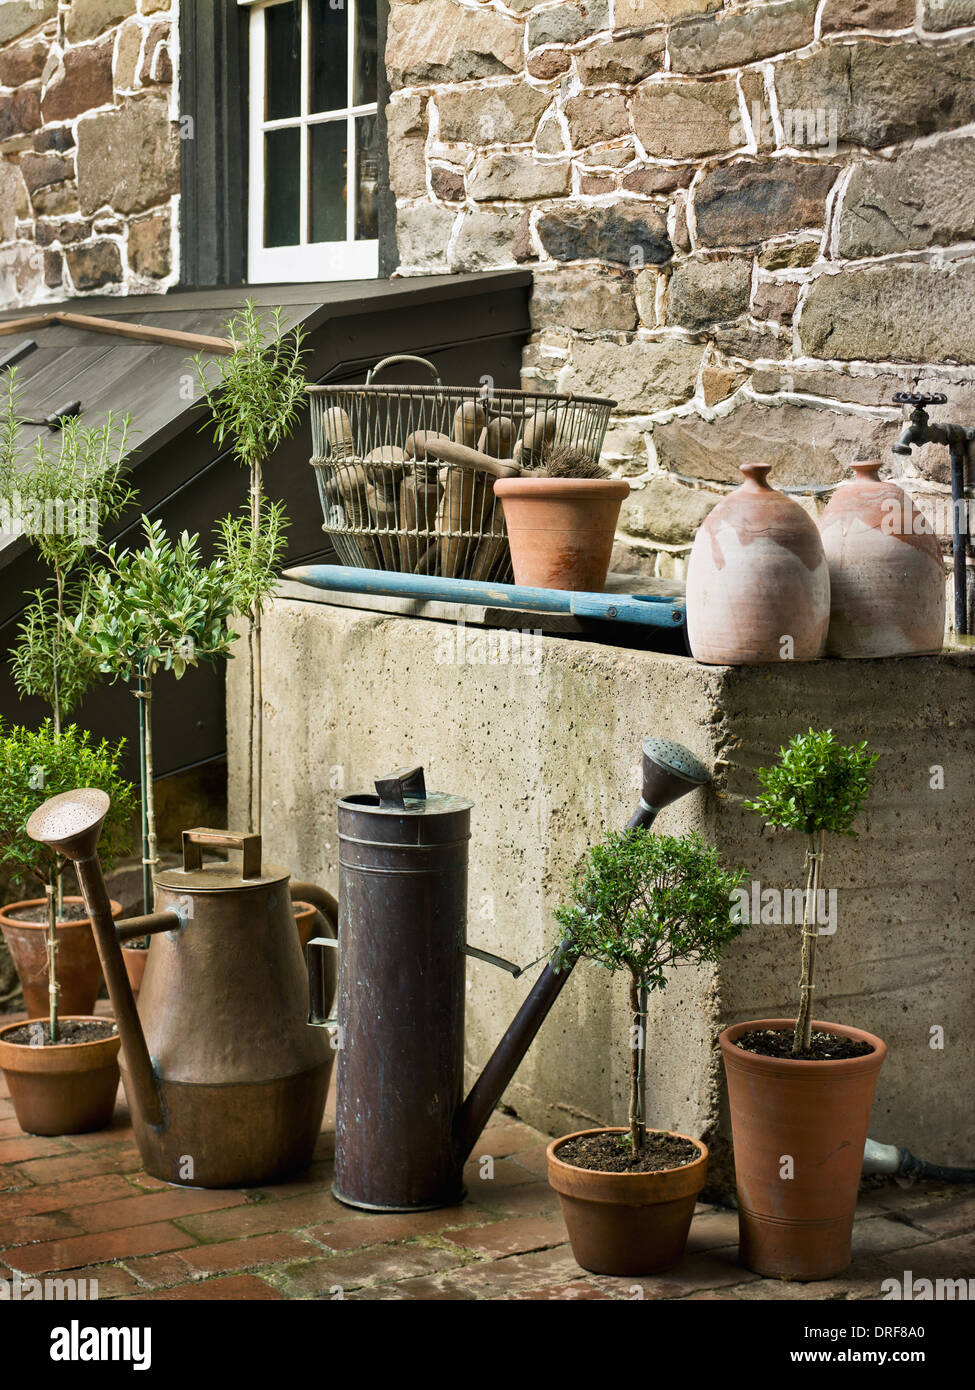 Maryland USA collection of old watering cans clay pots plants - Stock Image